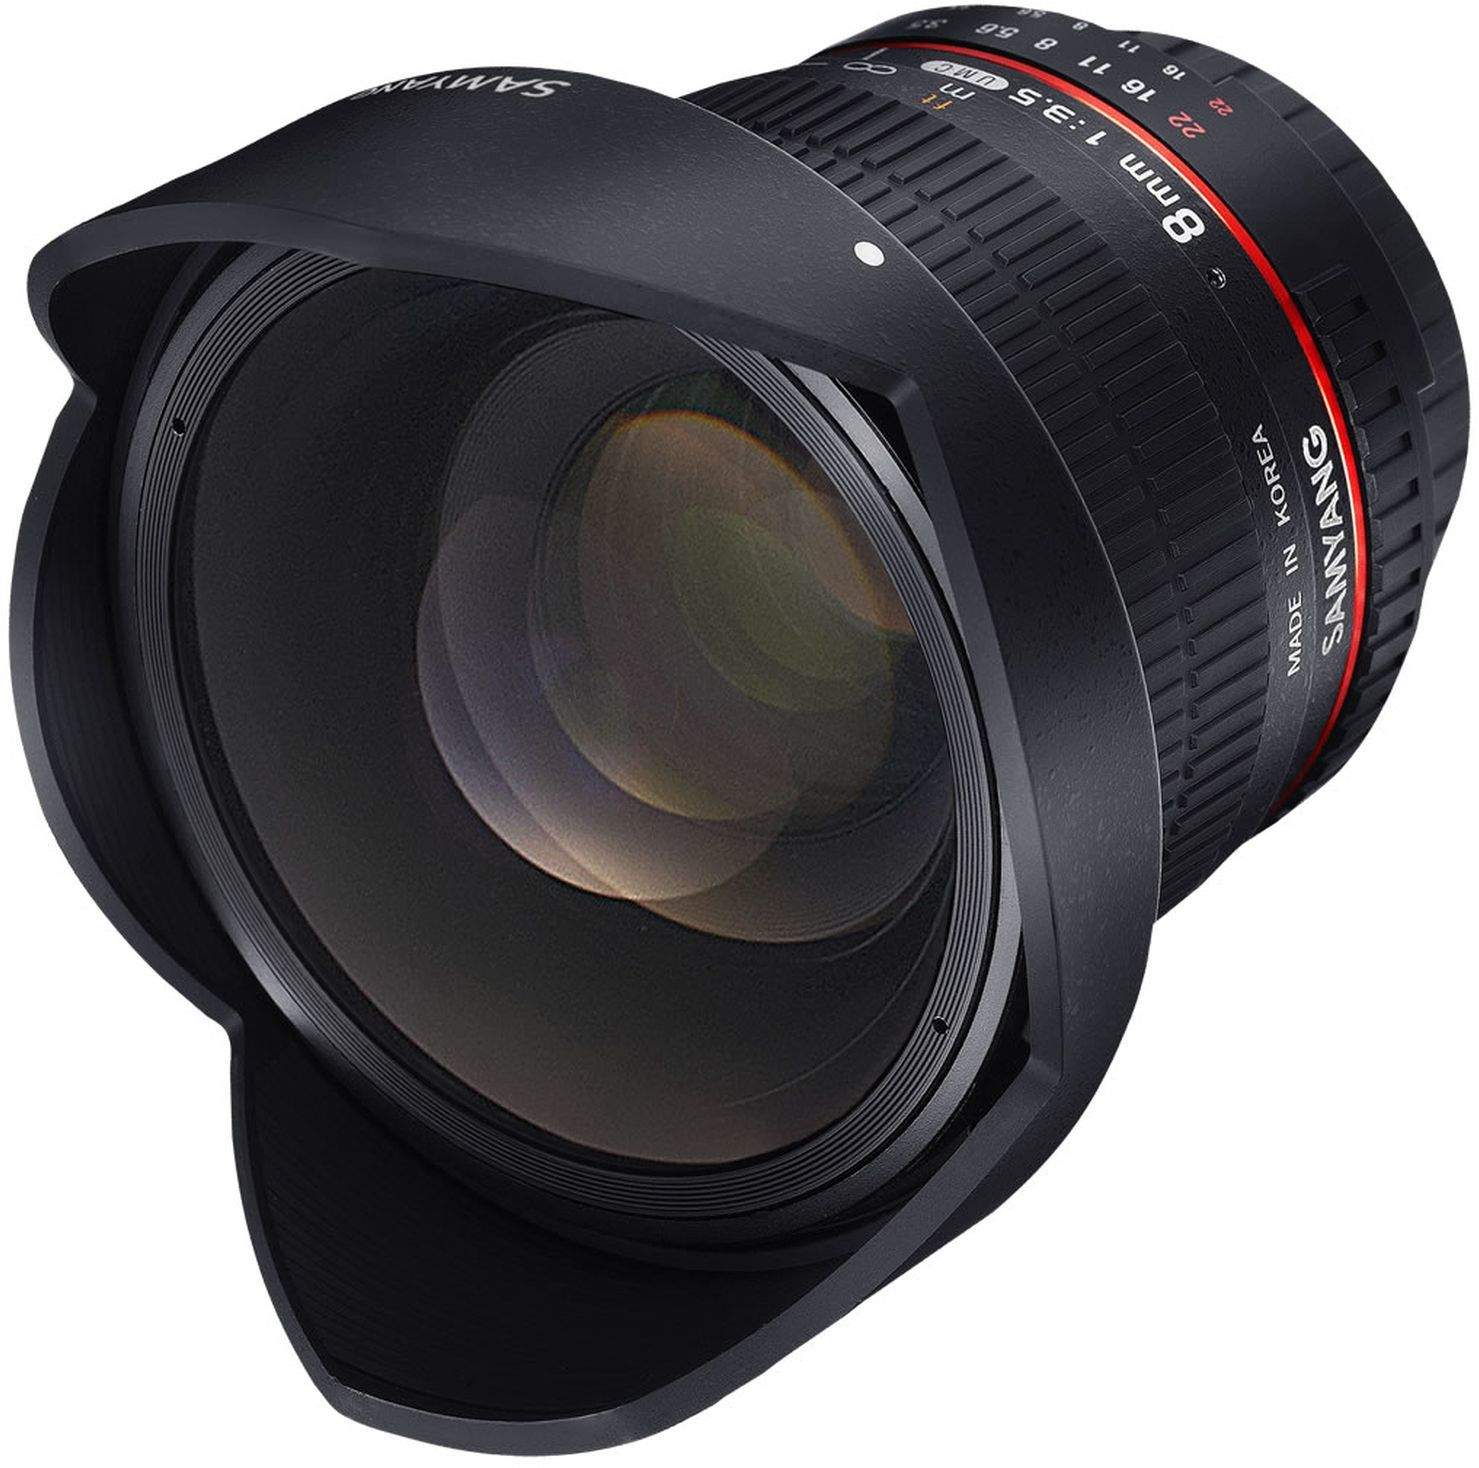 8mm F3.5 Fisheye UMC II APS-C Sony E main image